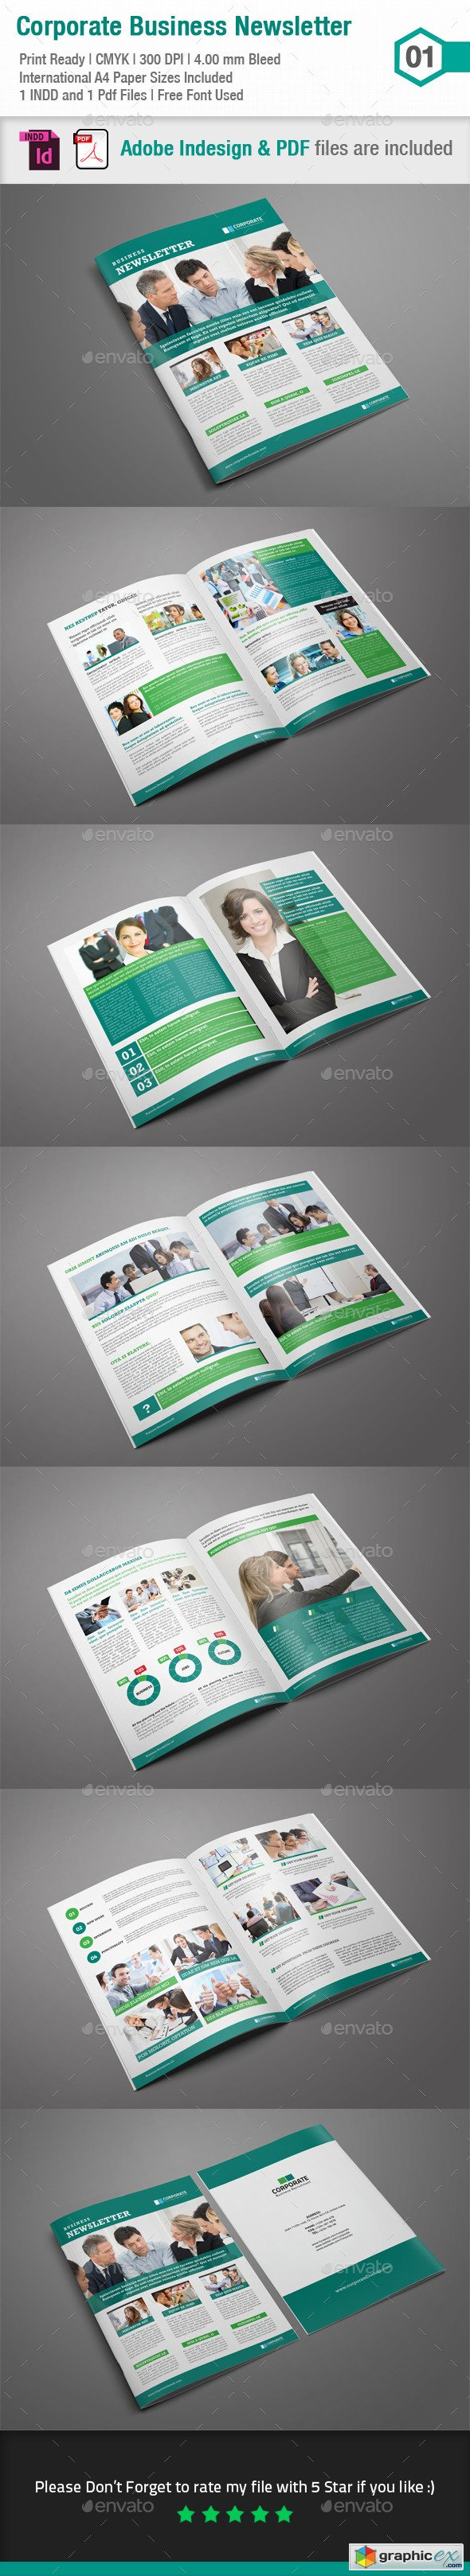 Business Newsletter Template_Indesign Layout_V1